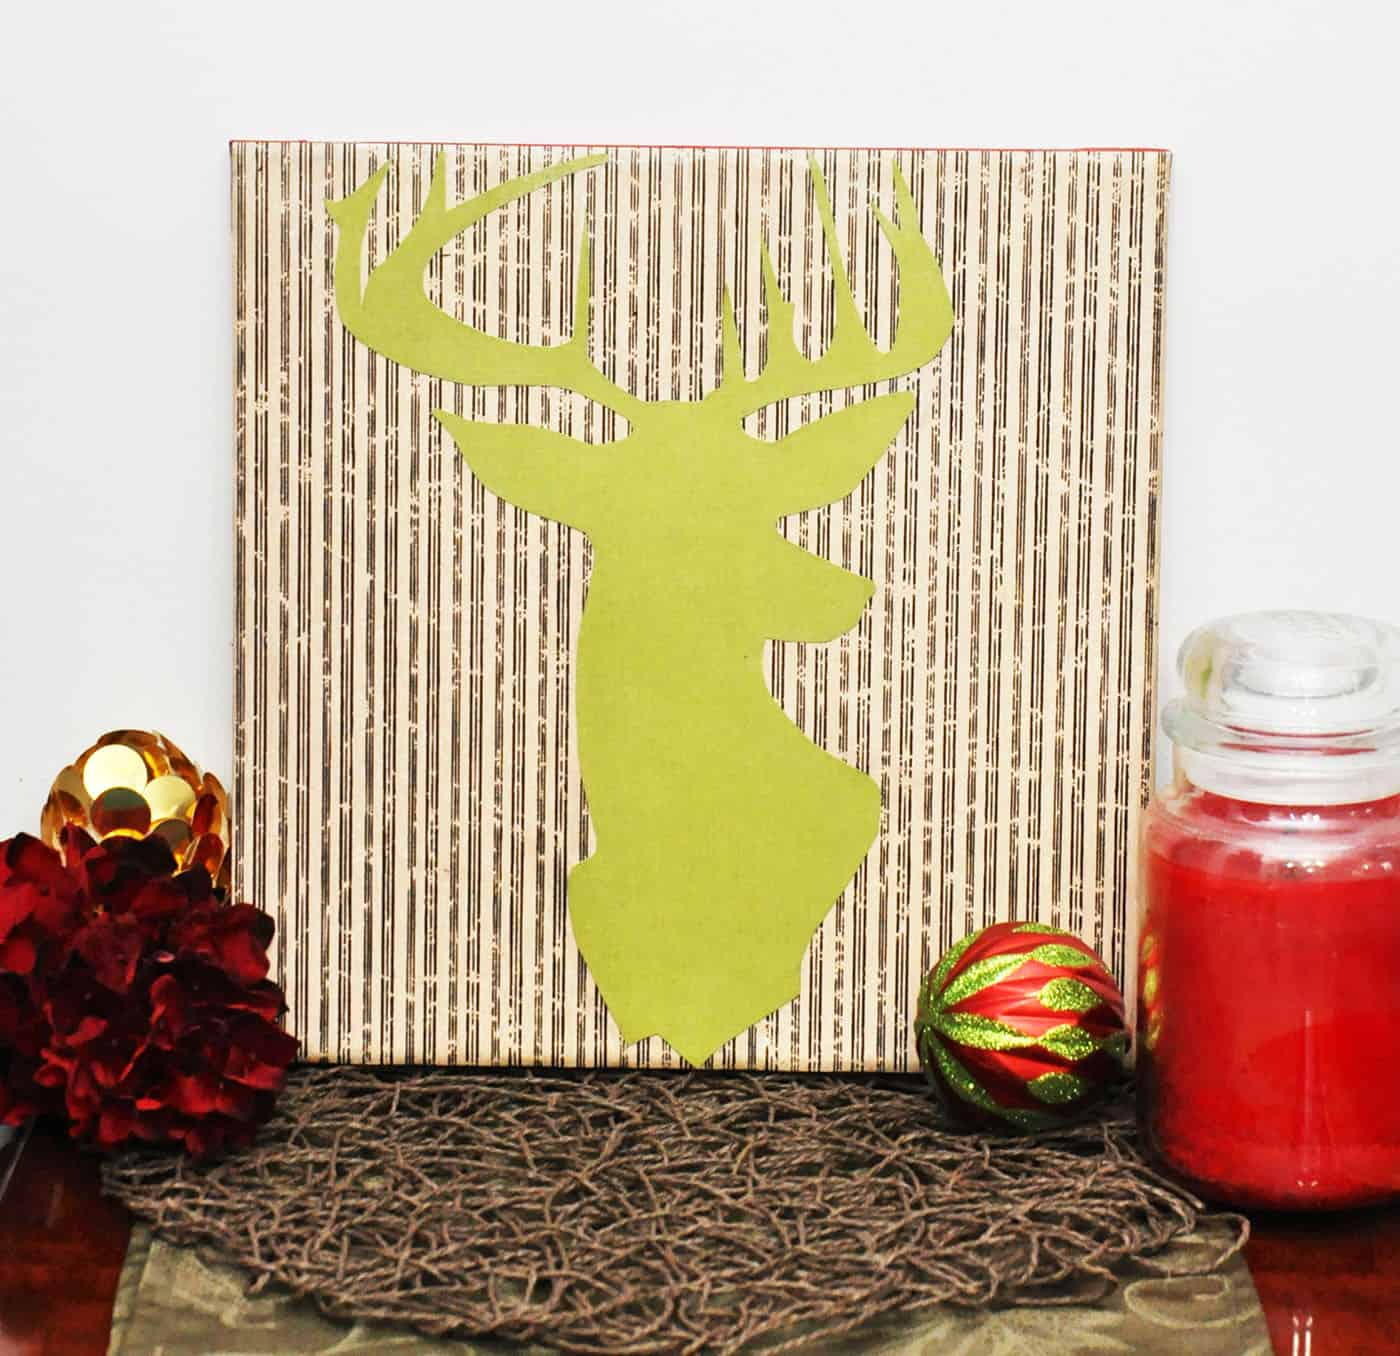 Deer silhouette DIY wall art - Mod Podge Rocks